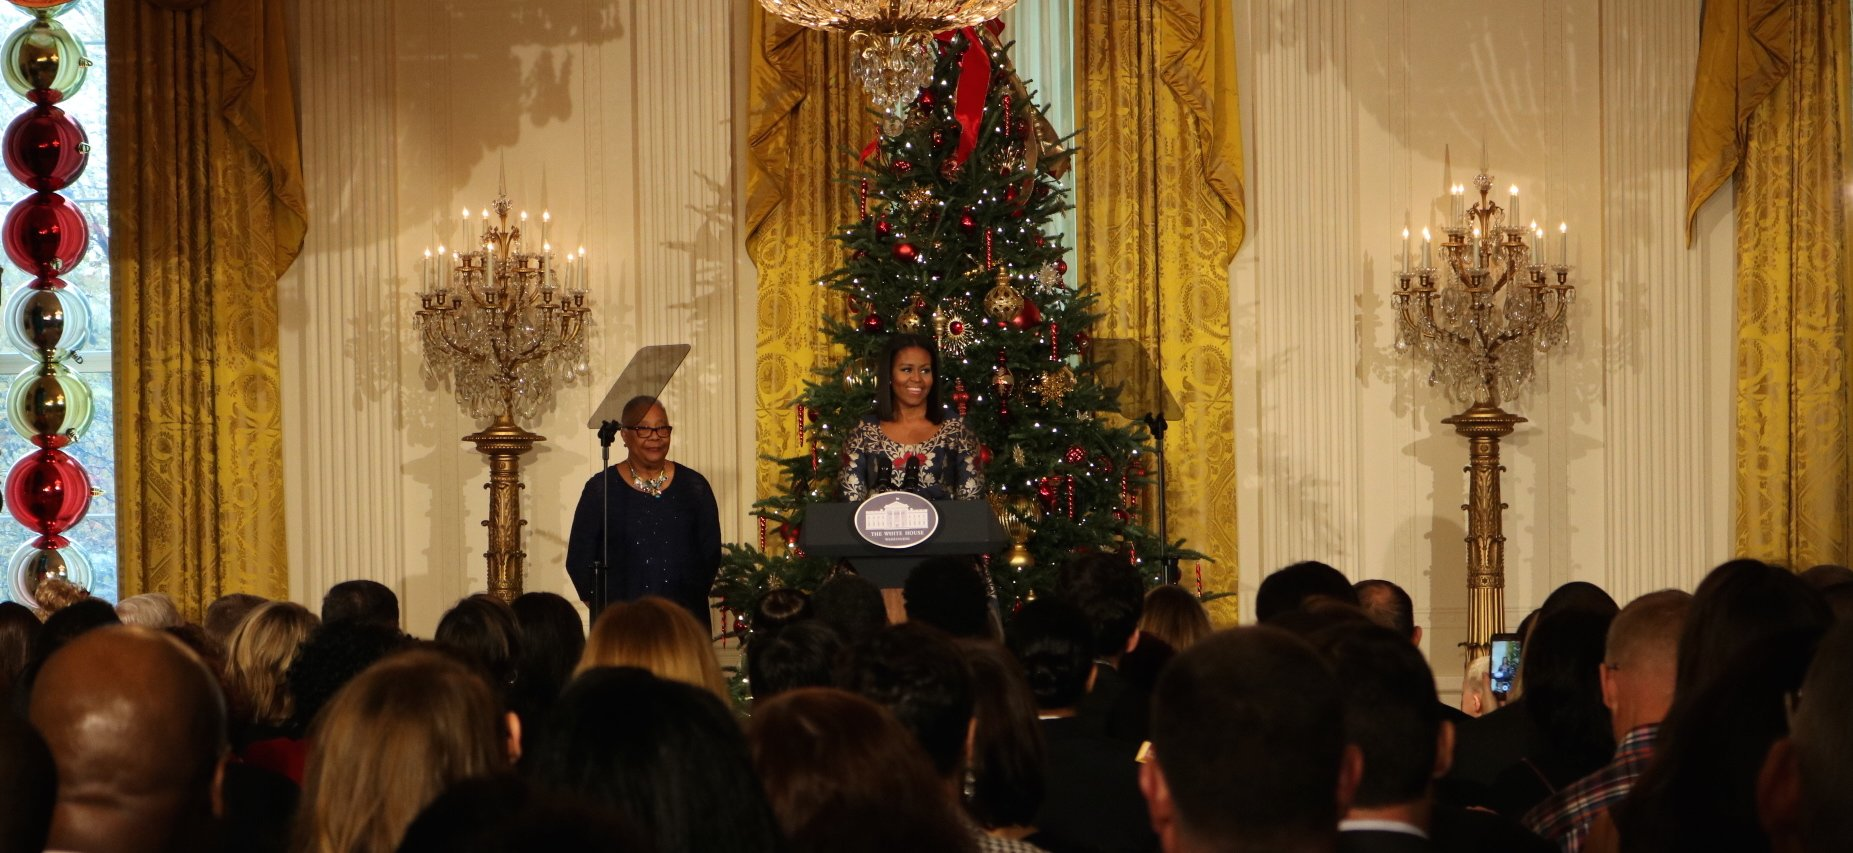 First Lady Michelle Obama speaks to Veterans and their families at the White House Christmas 2016. Photo by Sydney MaHan.